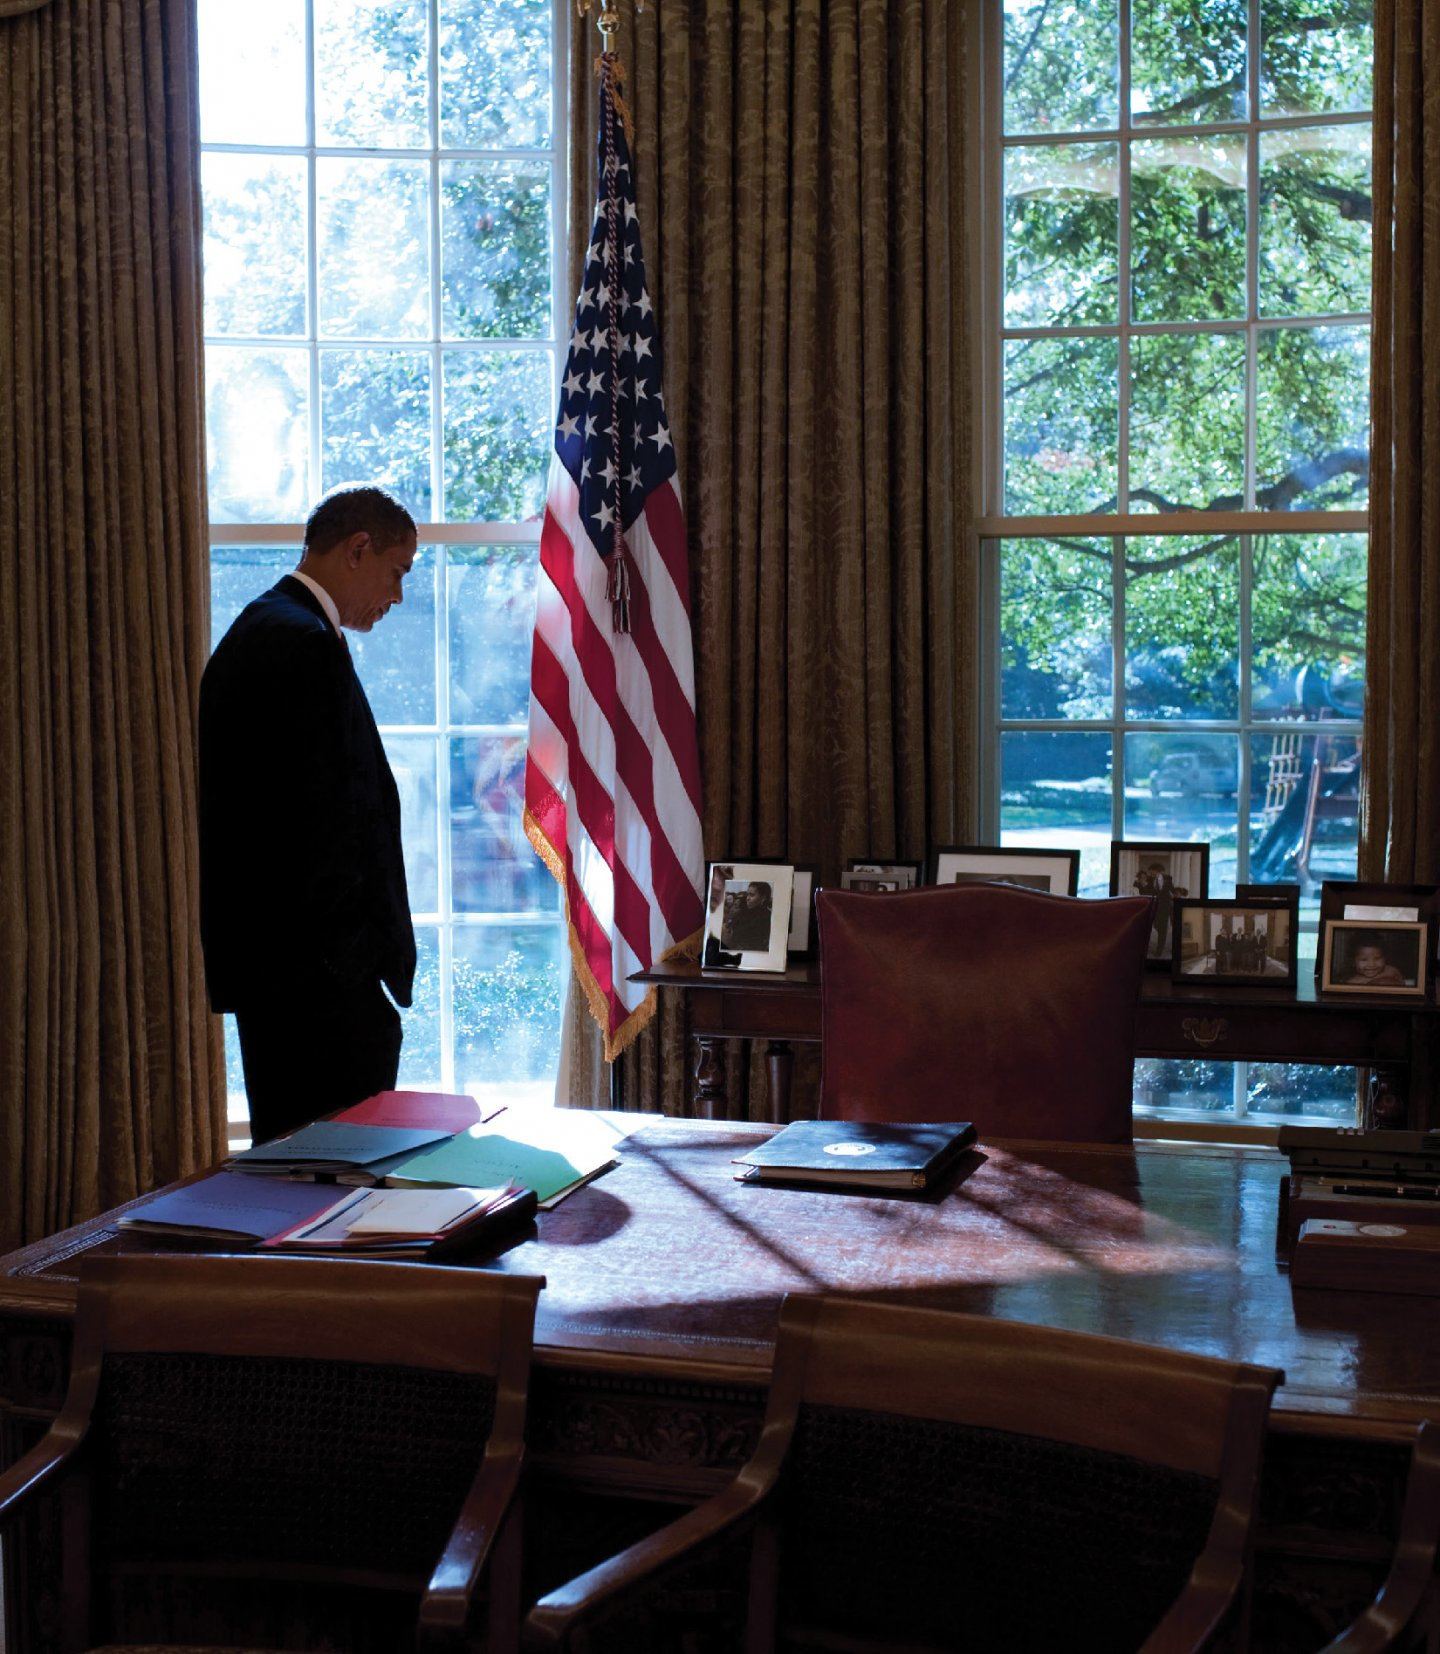 Barack Obama in the Oval Office, an American flag hanging nearby